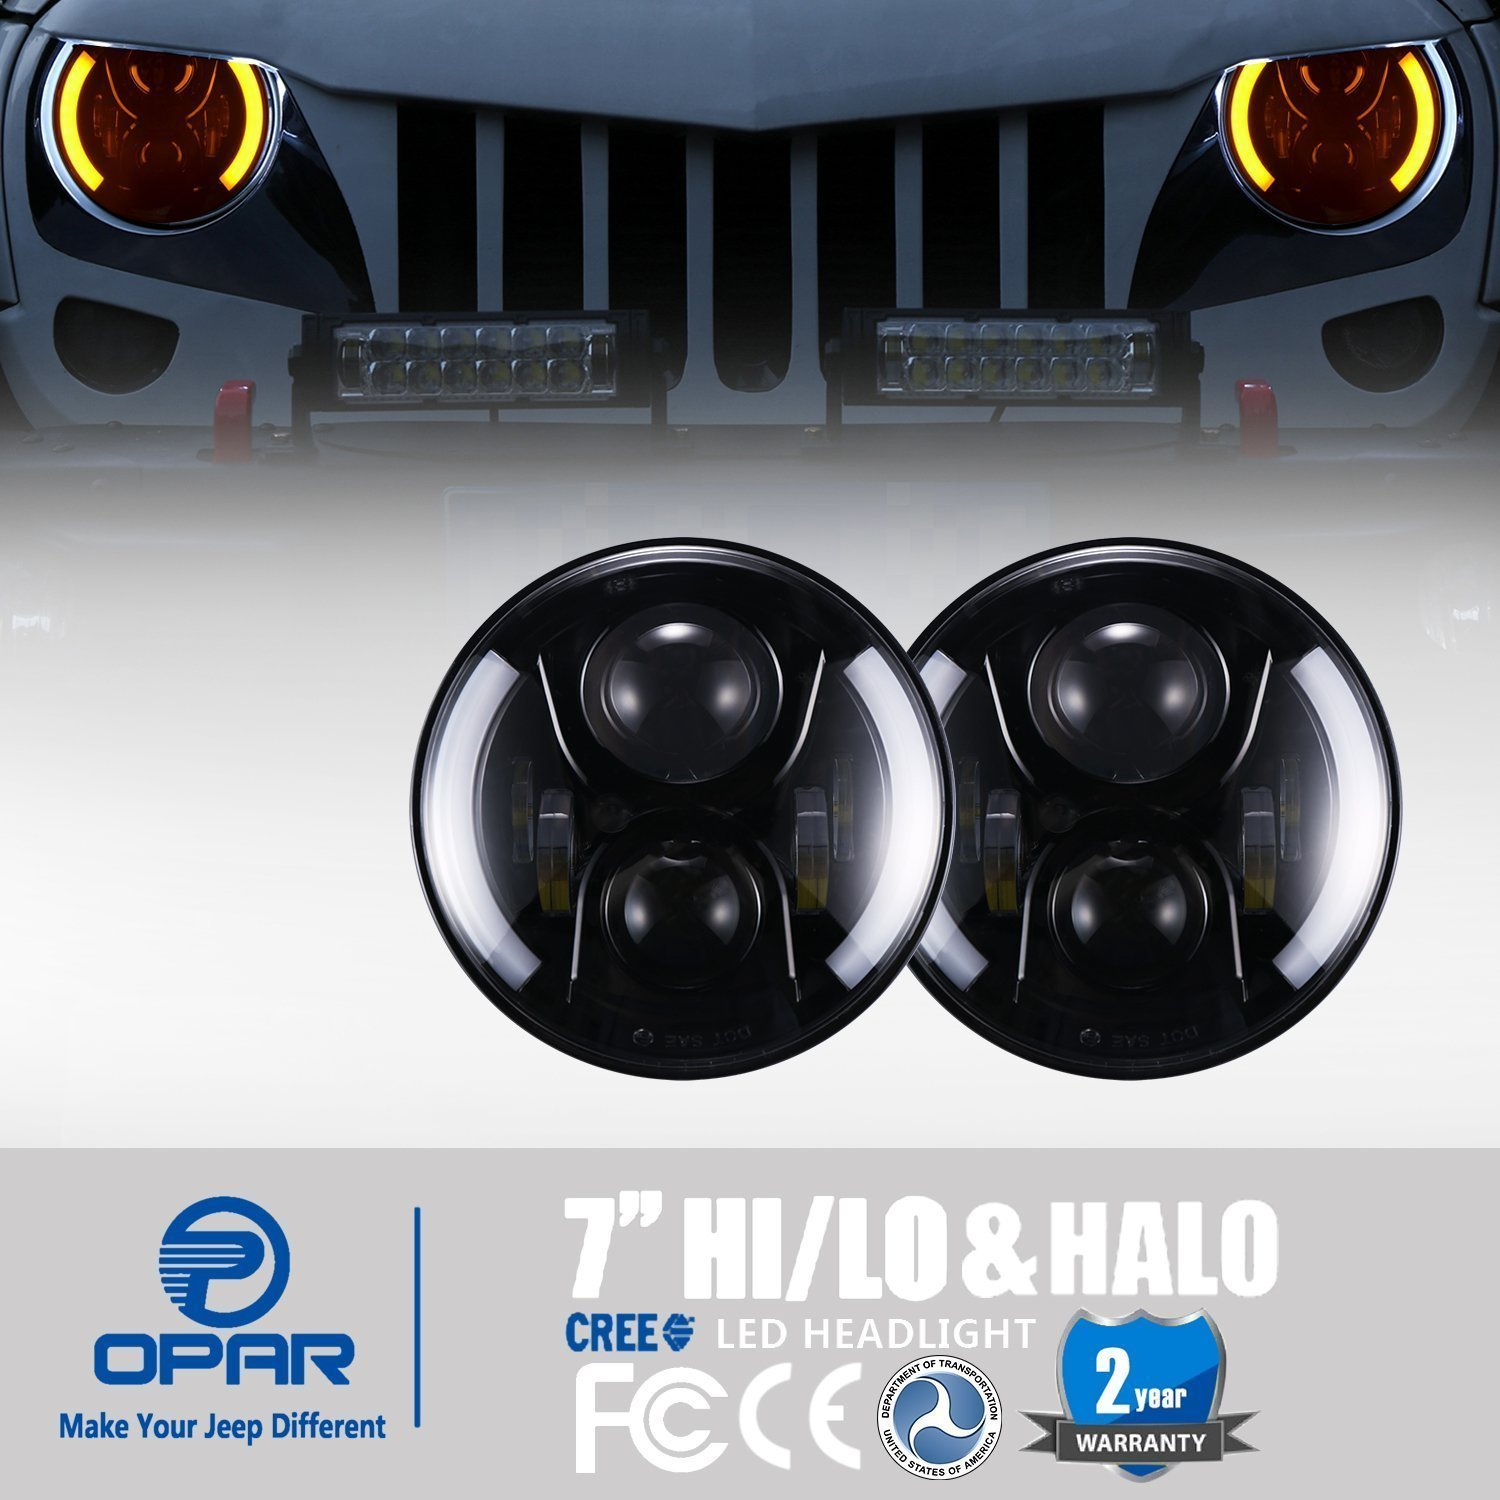 Opar 7 Inch Led Headlights W Drl Halo Angel Eyes Turn Cree Headlamps Wiring Diagram Signal For 97 18 Jeep Wrangler Jk Tj Unlimited Automotive